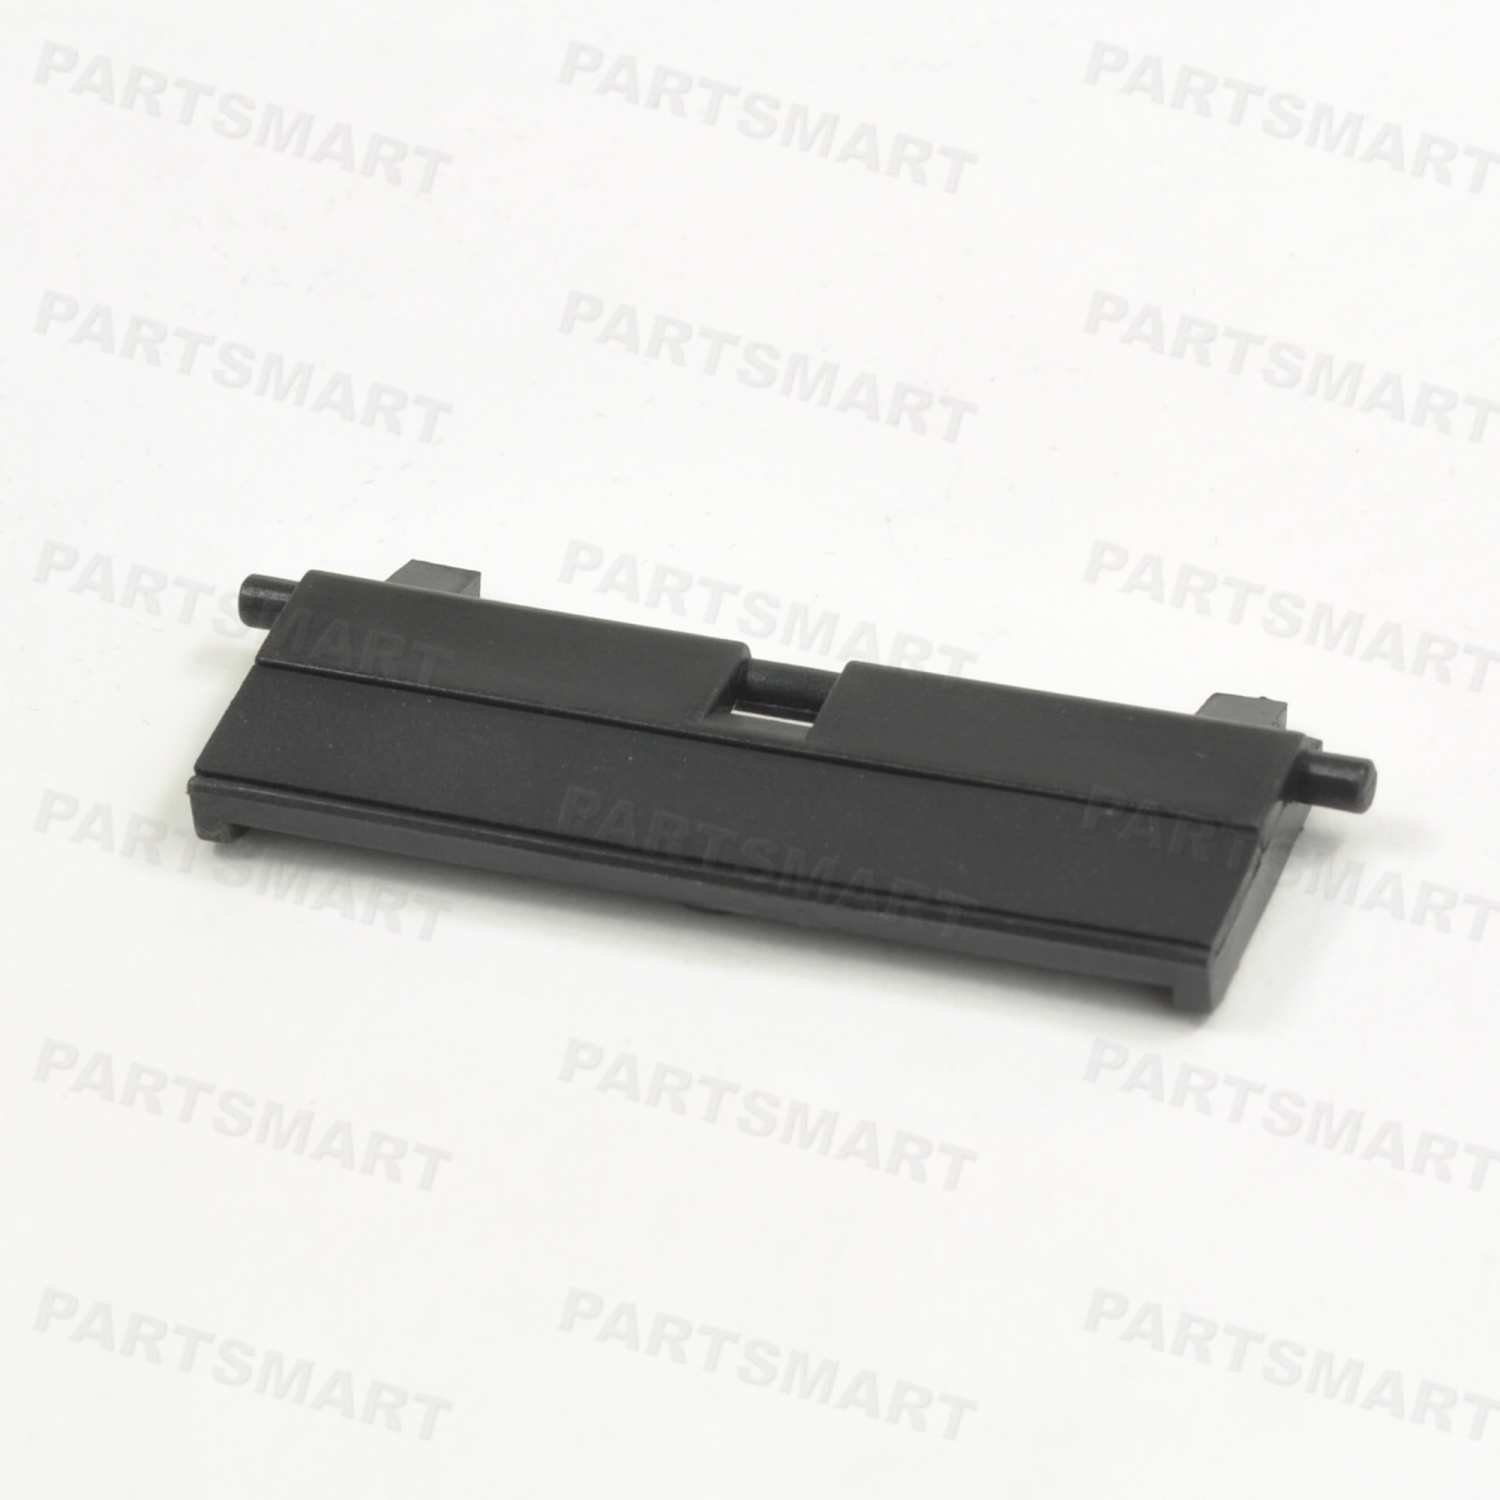 RM1-1298-PAD Separation Pad Only, Tray 2 for HP LaserJet 1320, LaserJet  2400 | Price: $2.34 | Printer Parts | Partsmart